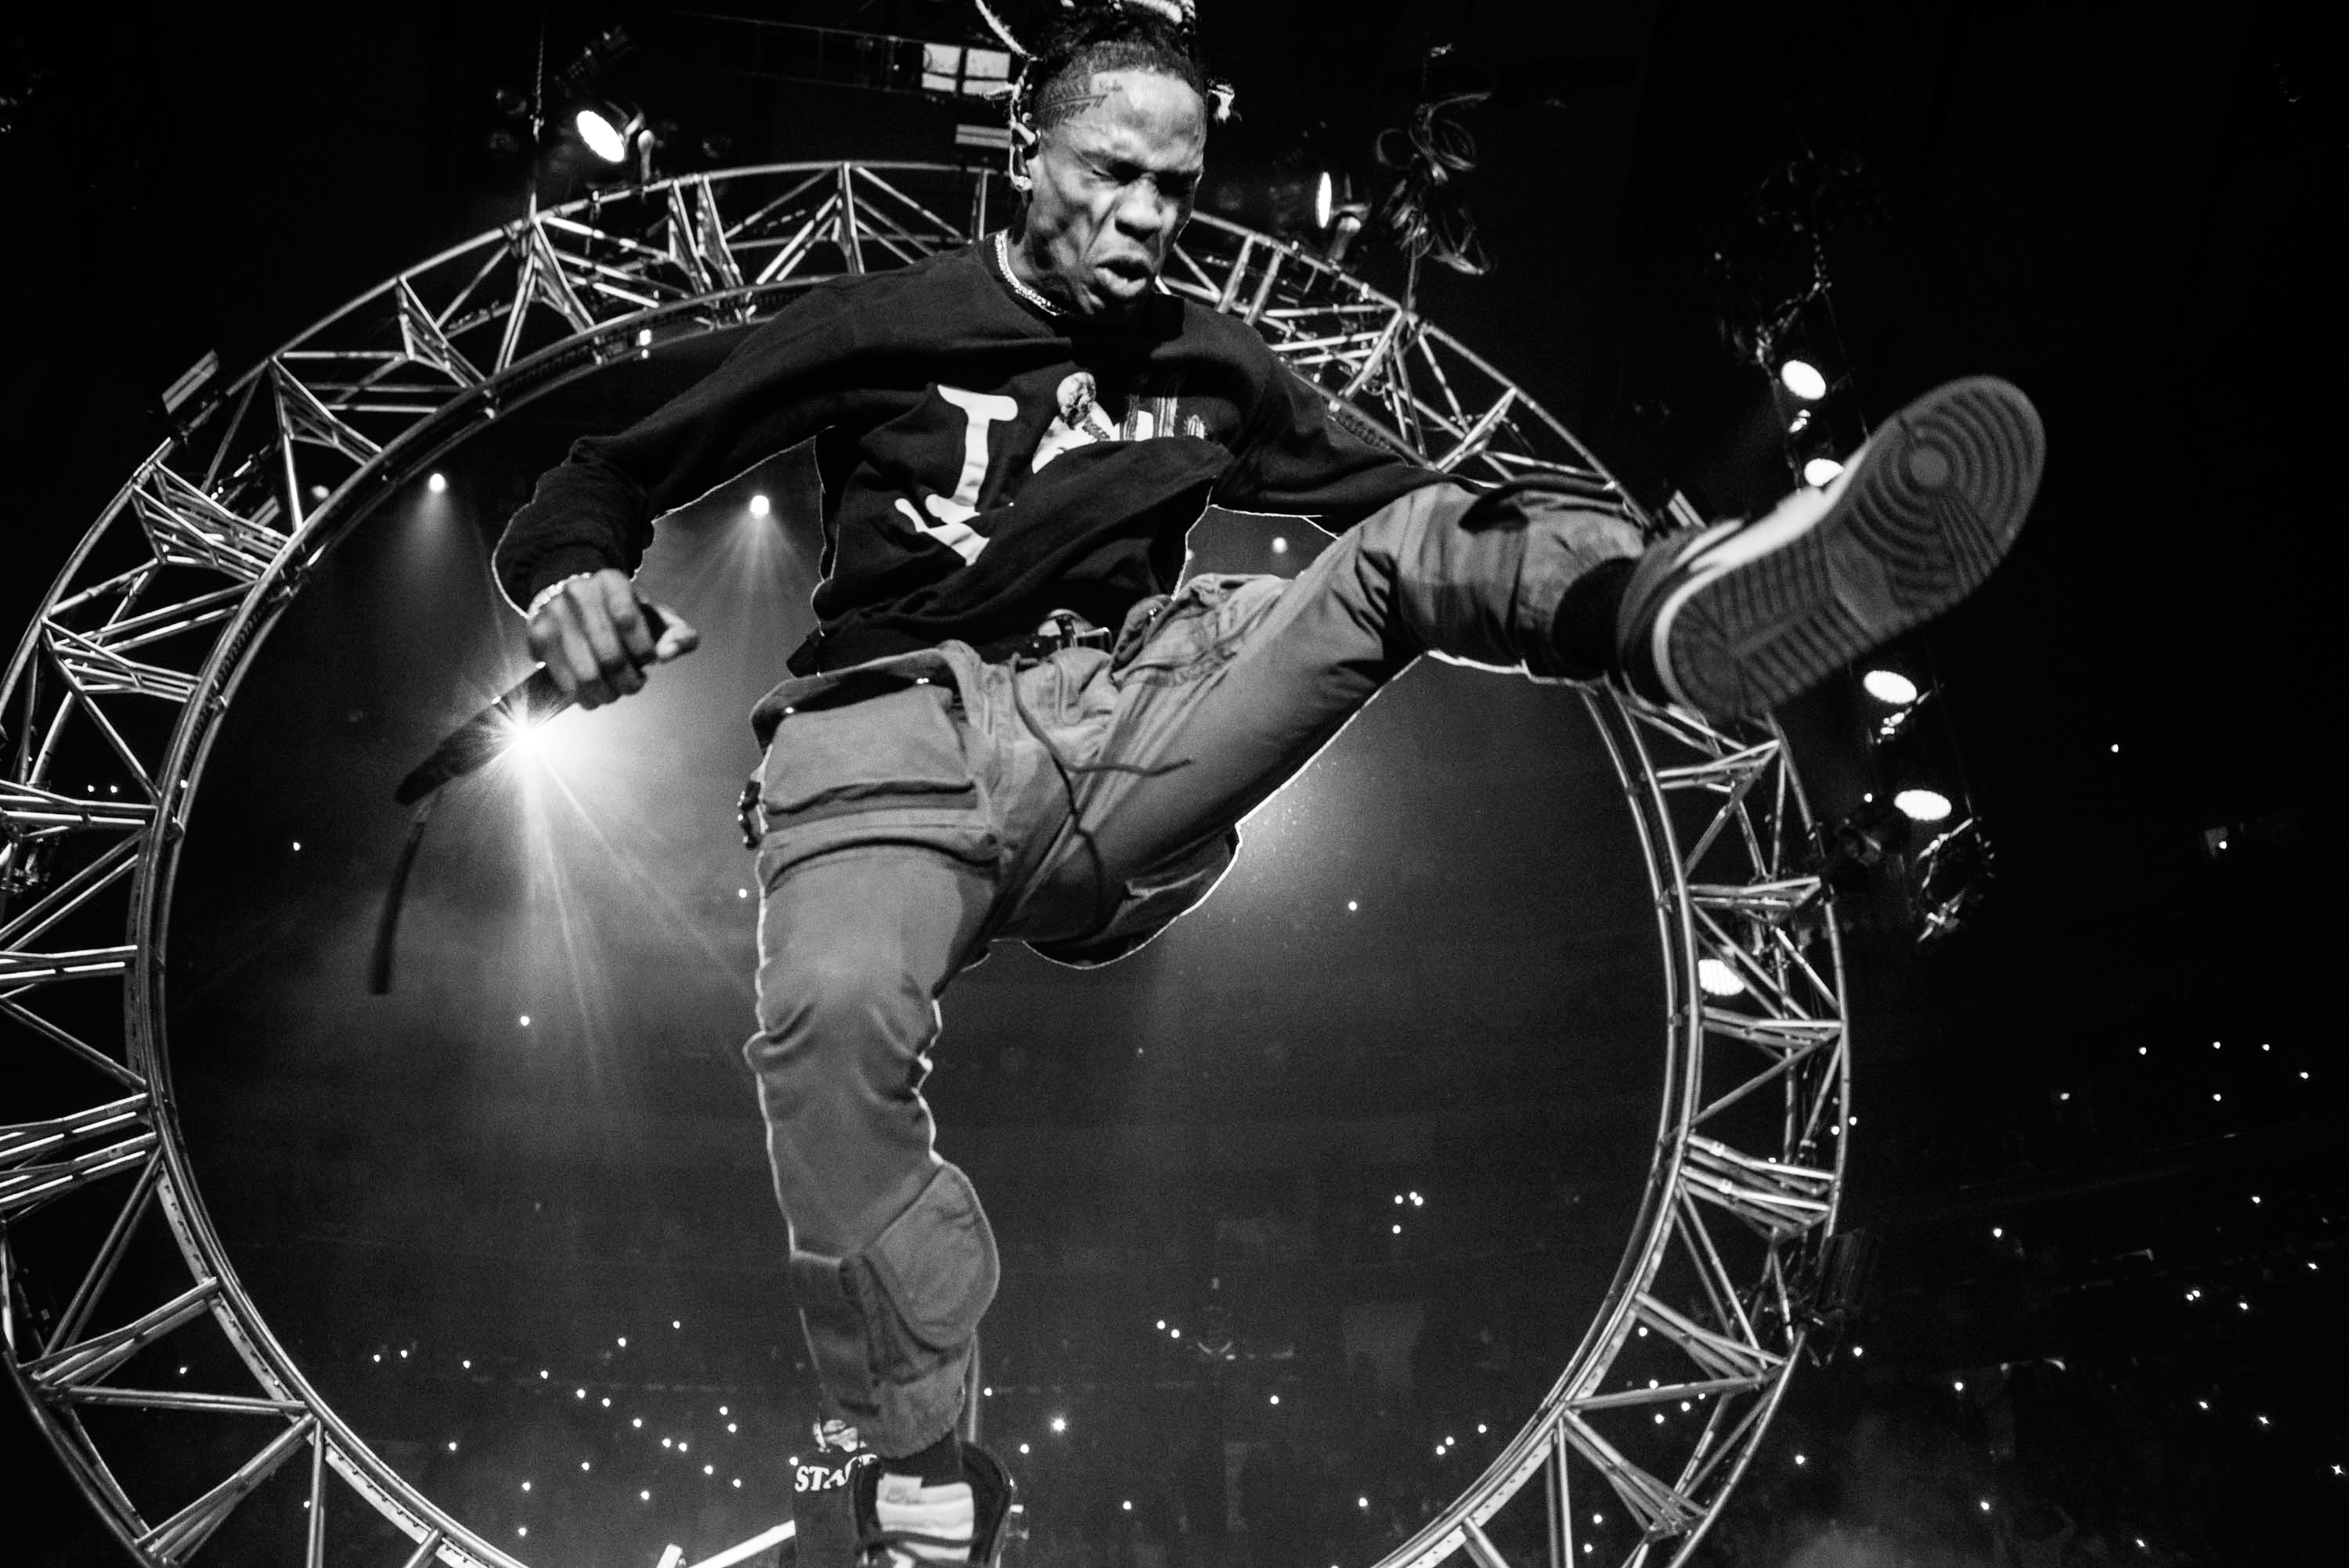 ef34dfbce8b2 How Travis Scott Became Music's (Not Just Rap's) Best Performer ...